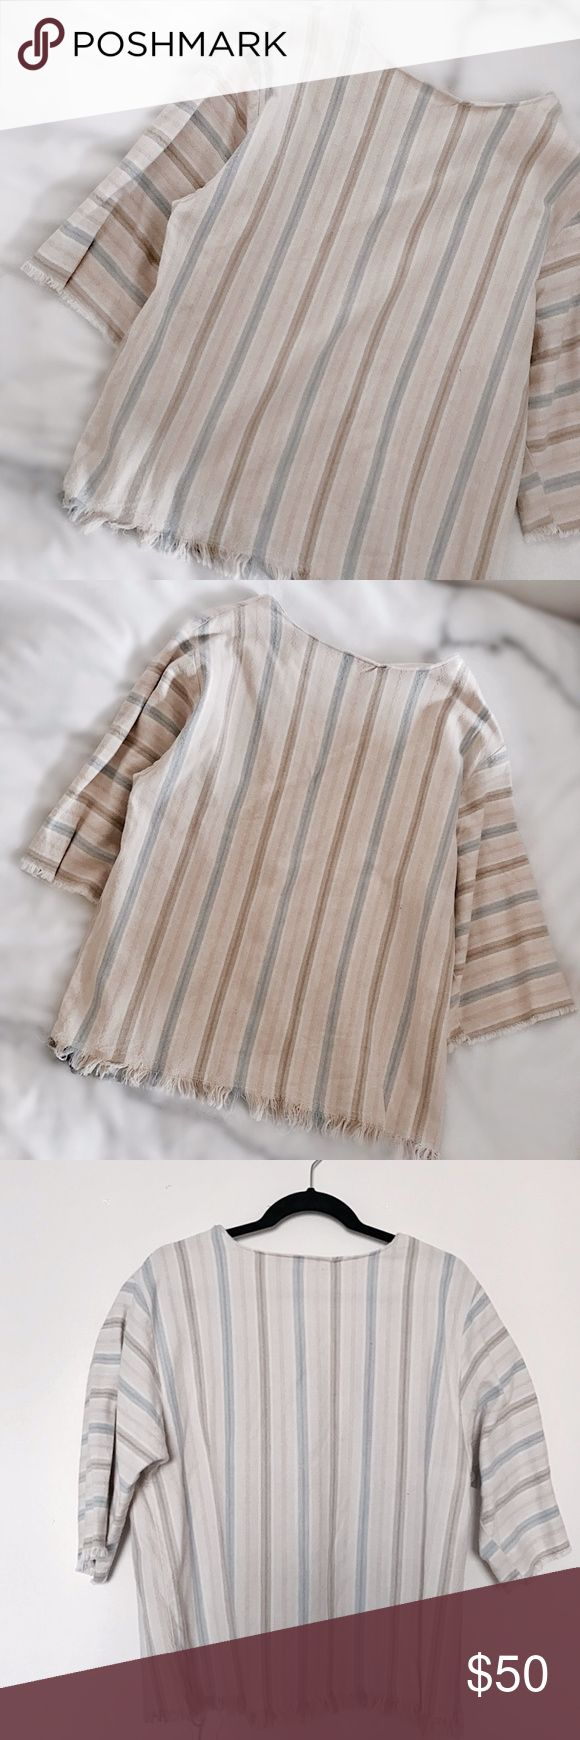 """""""Beach Fray"""" Stripey Linen Top Vintage, stripey linen top with a semi-structured fit and baby-frayed hem. Super relaxed and great to layer over sweaters and button-ups for an interesting look this winter, or take it on a warm holiday. 3/4 sleeves and open neck to enhance collarbones.  Fits like a size M but looks great for anyone size XS/S as well-- 25""""L, 19""""p to p. Retail value $100. -Olivia Cheng Curated Vintage- Vintage Tops"""